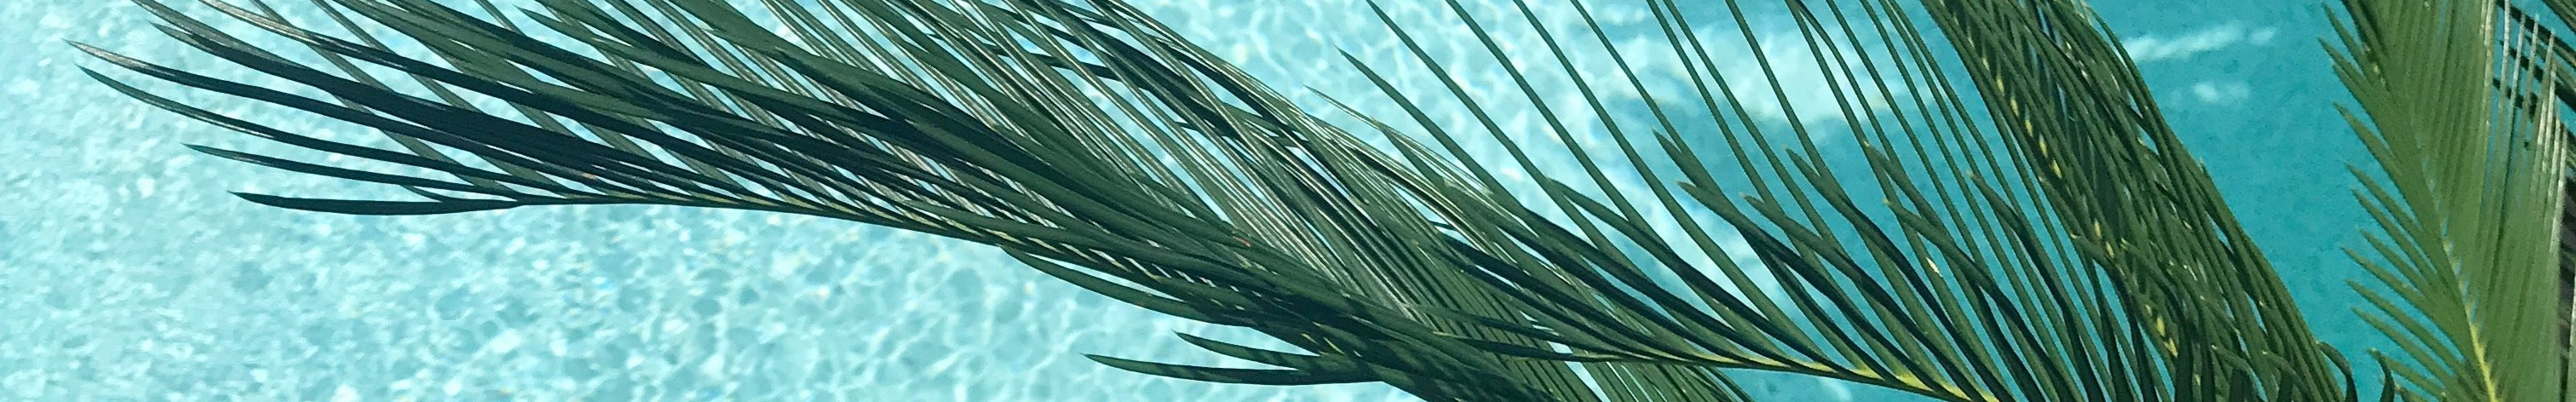 Stock Image of Palm Tree Over a Pool